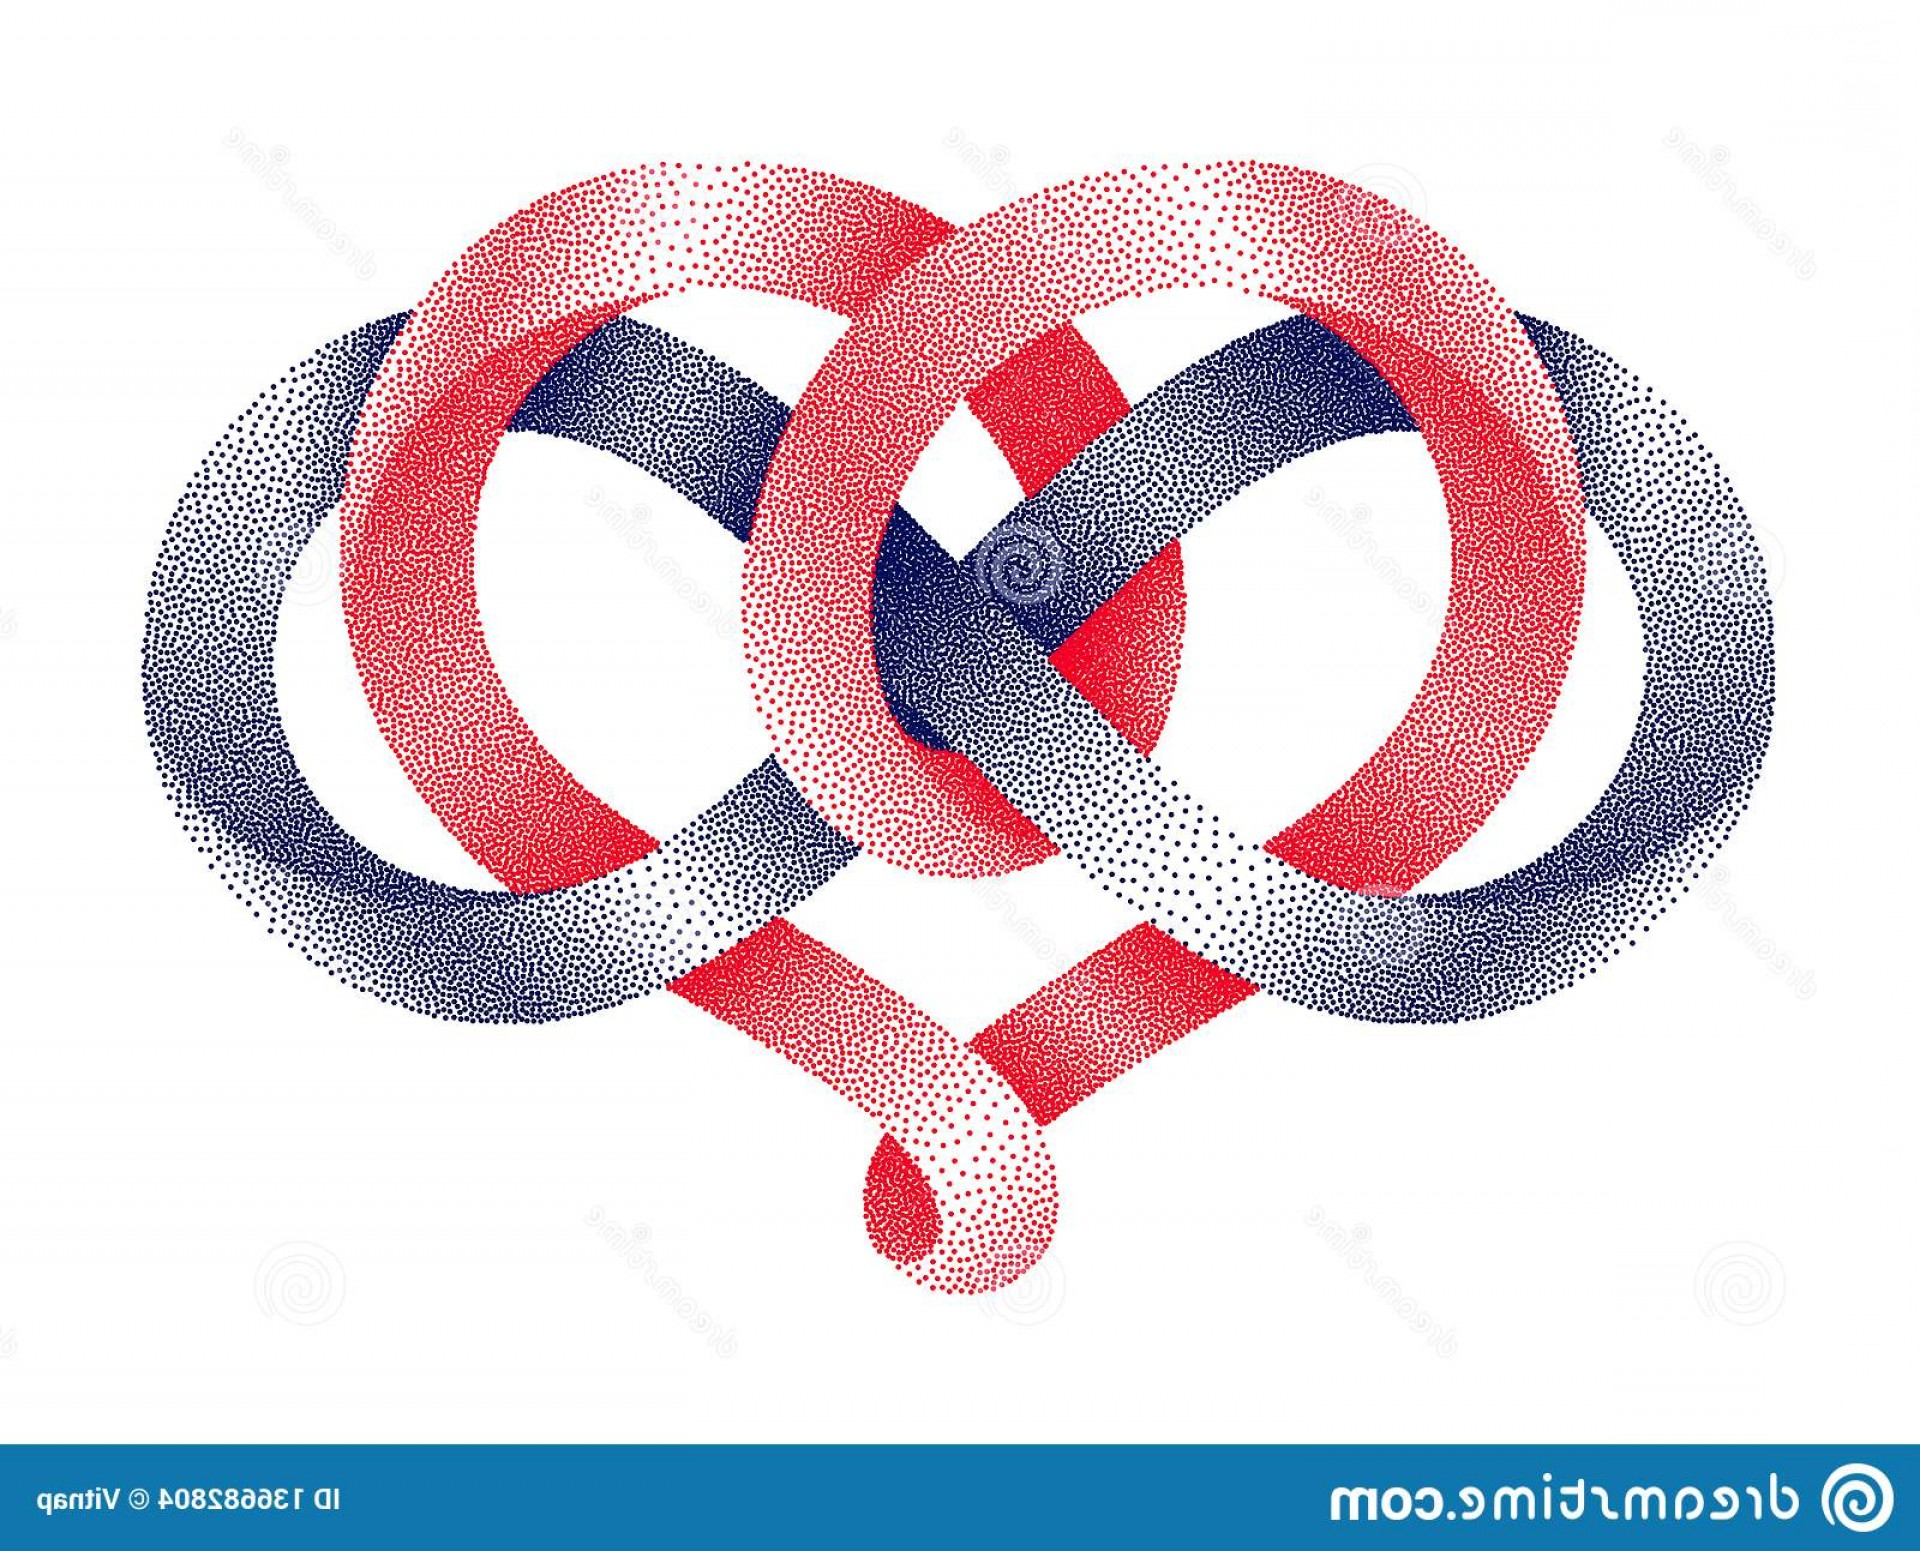 Vector Infinity Symbol Hearts: Heart Shape Infinity Symbol Made Intertwined Stippled Mobius Strips Eternal Love Sign Vector Illustration Isolated Image